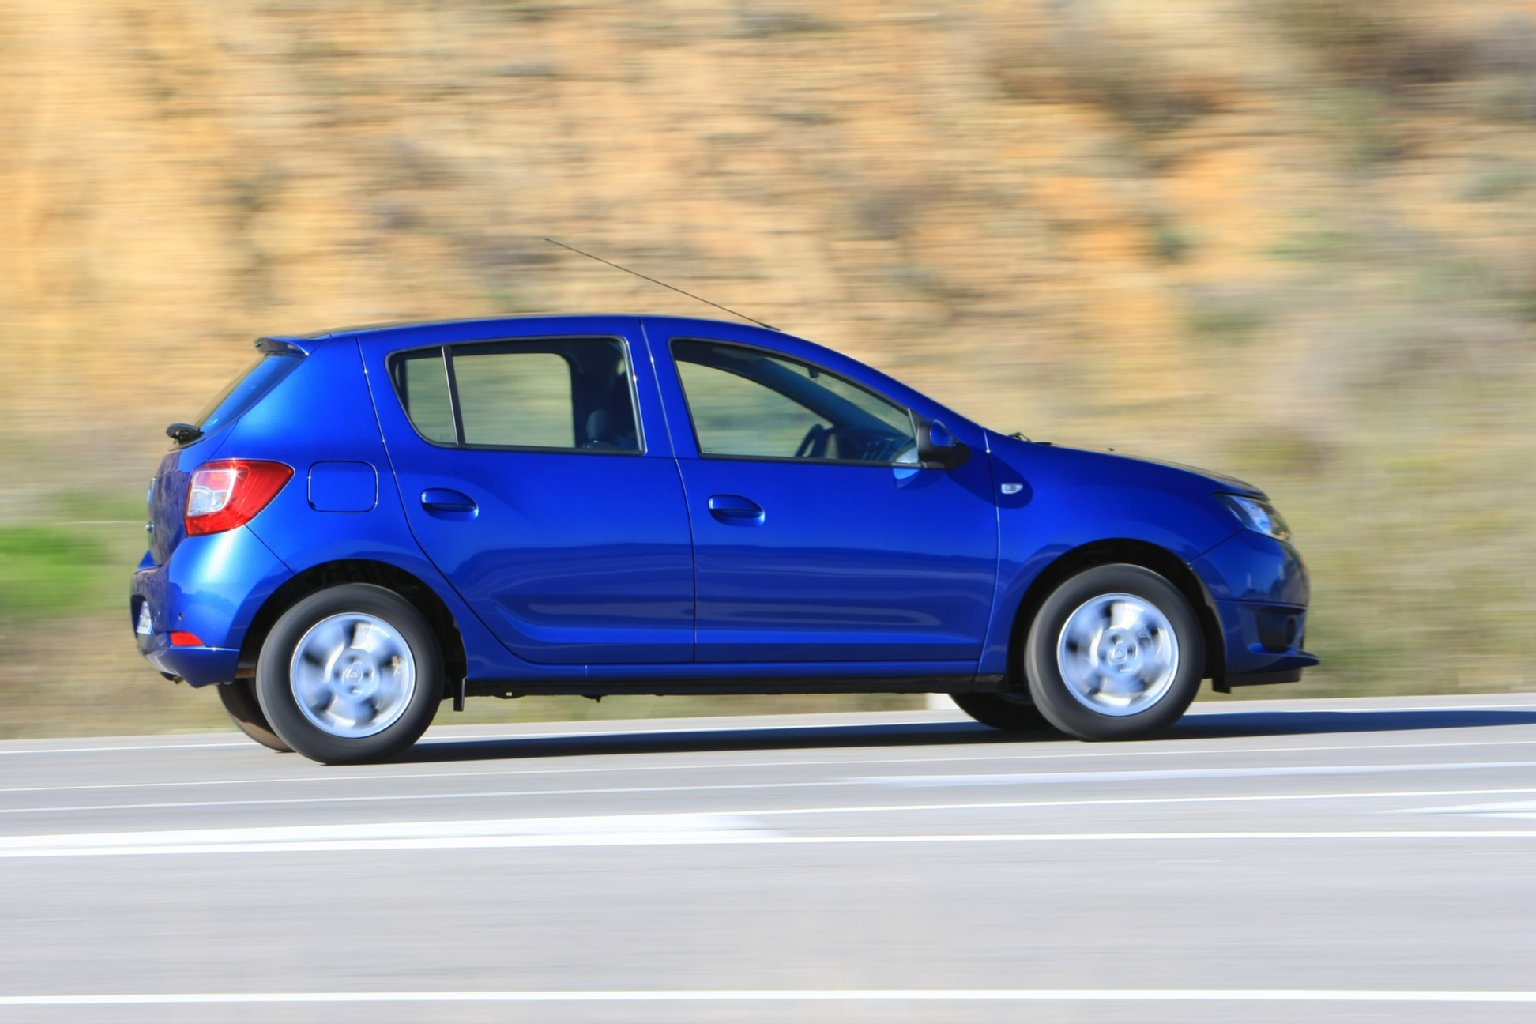 2019 Dacia Logan photo - 4